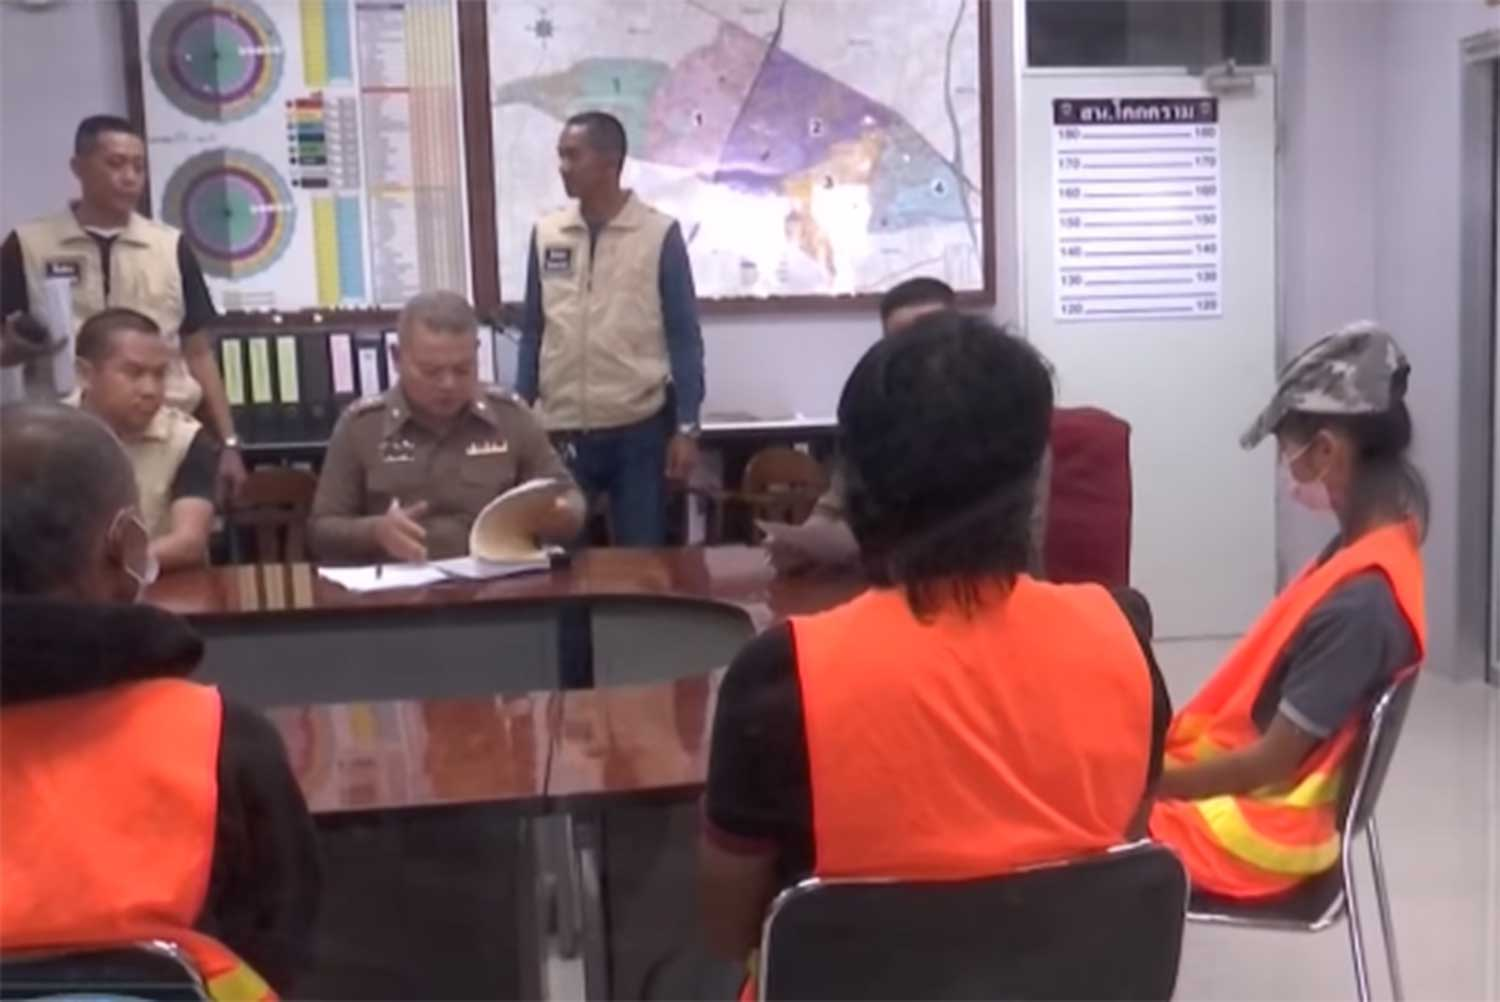 Police question Kanchana Srisang, 25, right, and two other men, Prachoen Krabinrot, 40, and Dao Chaengpradit, 35, after they were arrested on charges of attempted murder of Uamduan Srisang, 55, Ms Kanchana's mother. (Image captured from TV footage)